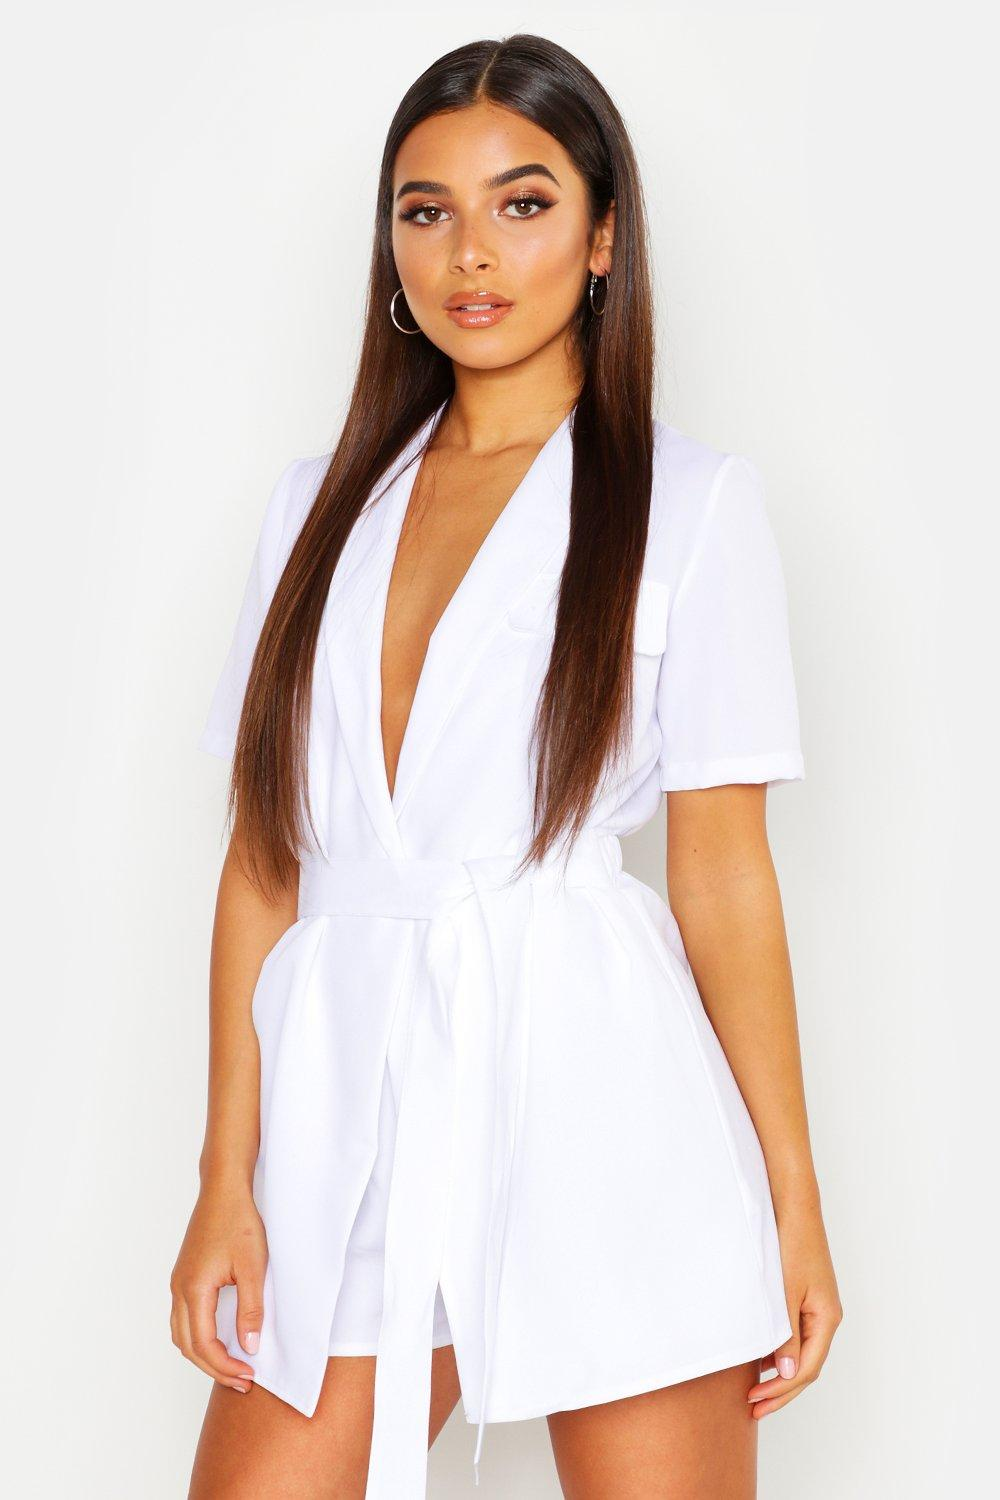 boohoo Womens Petite Utility Belted Playsuit - White - 6, White